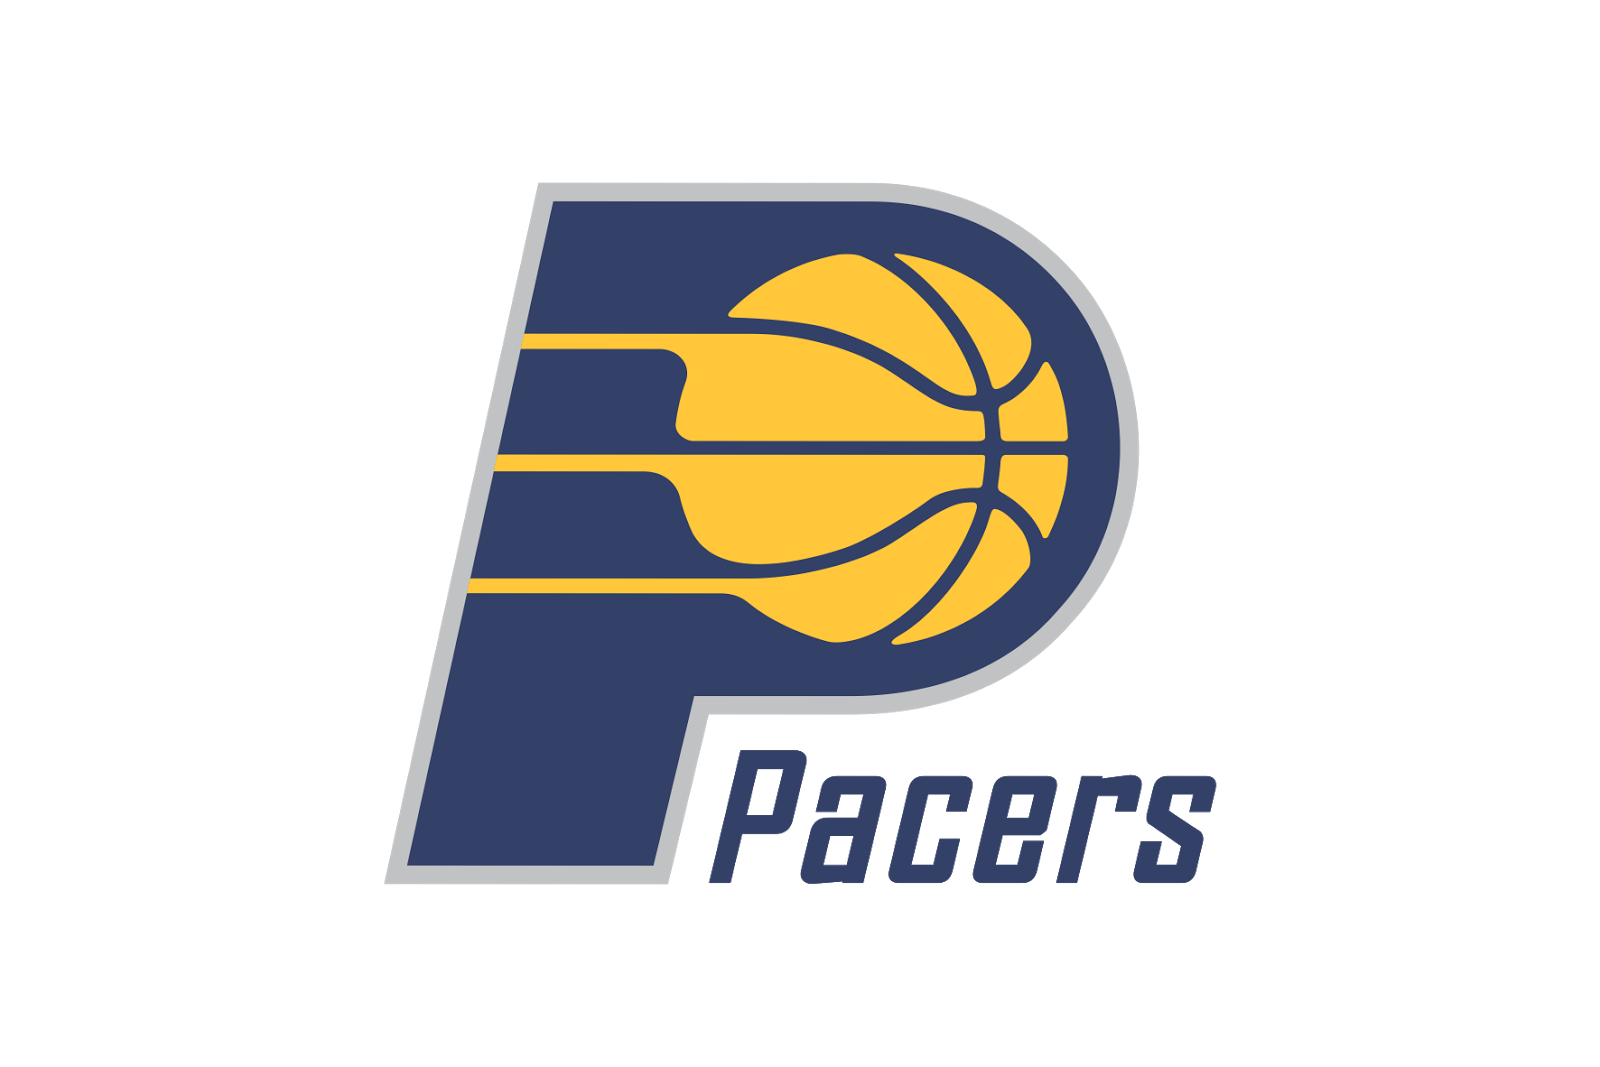 Indiana pacers logo logo share indiana pacers logo voltagebd Gallery